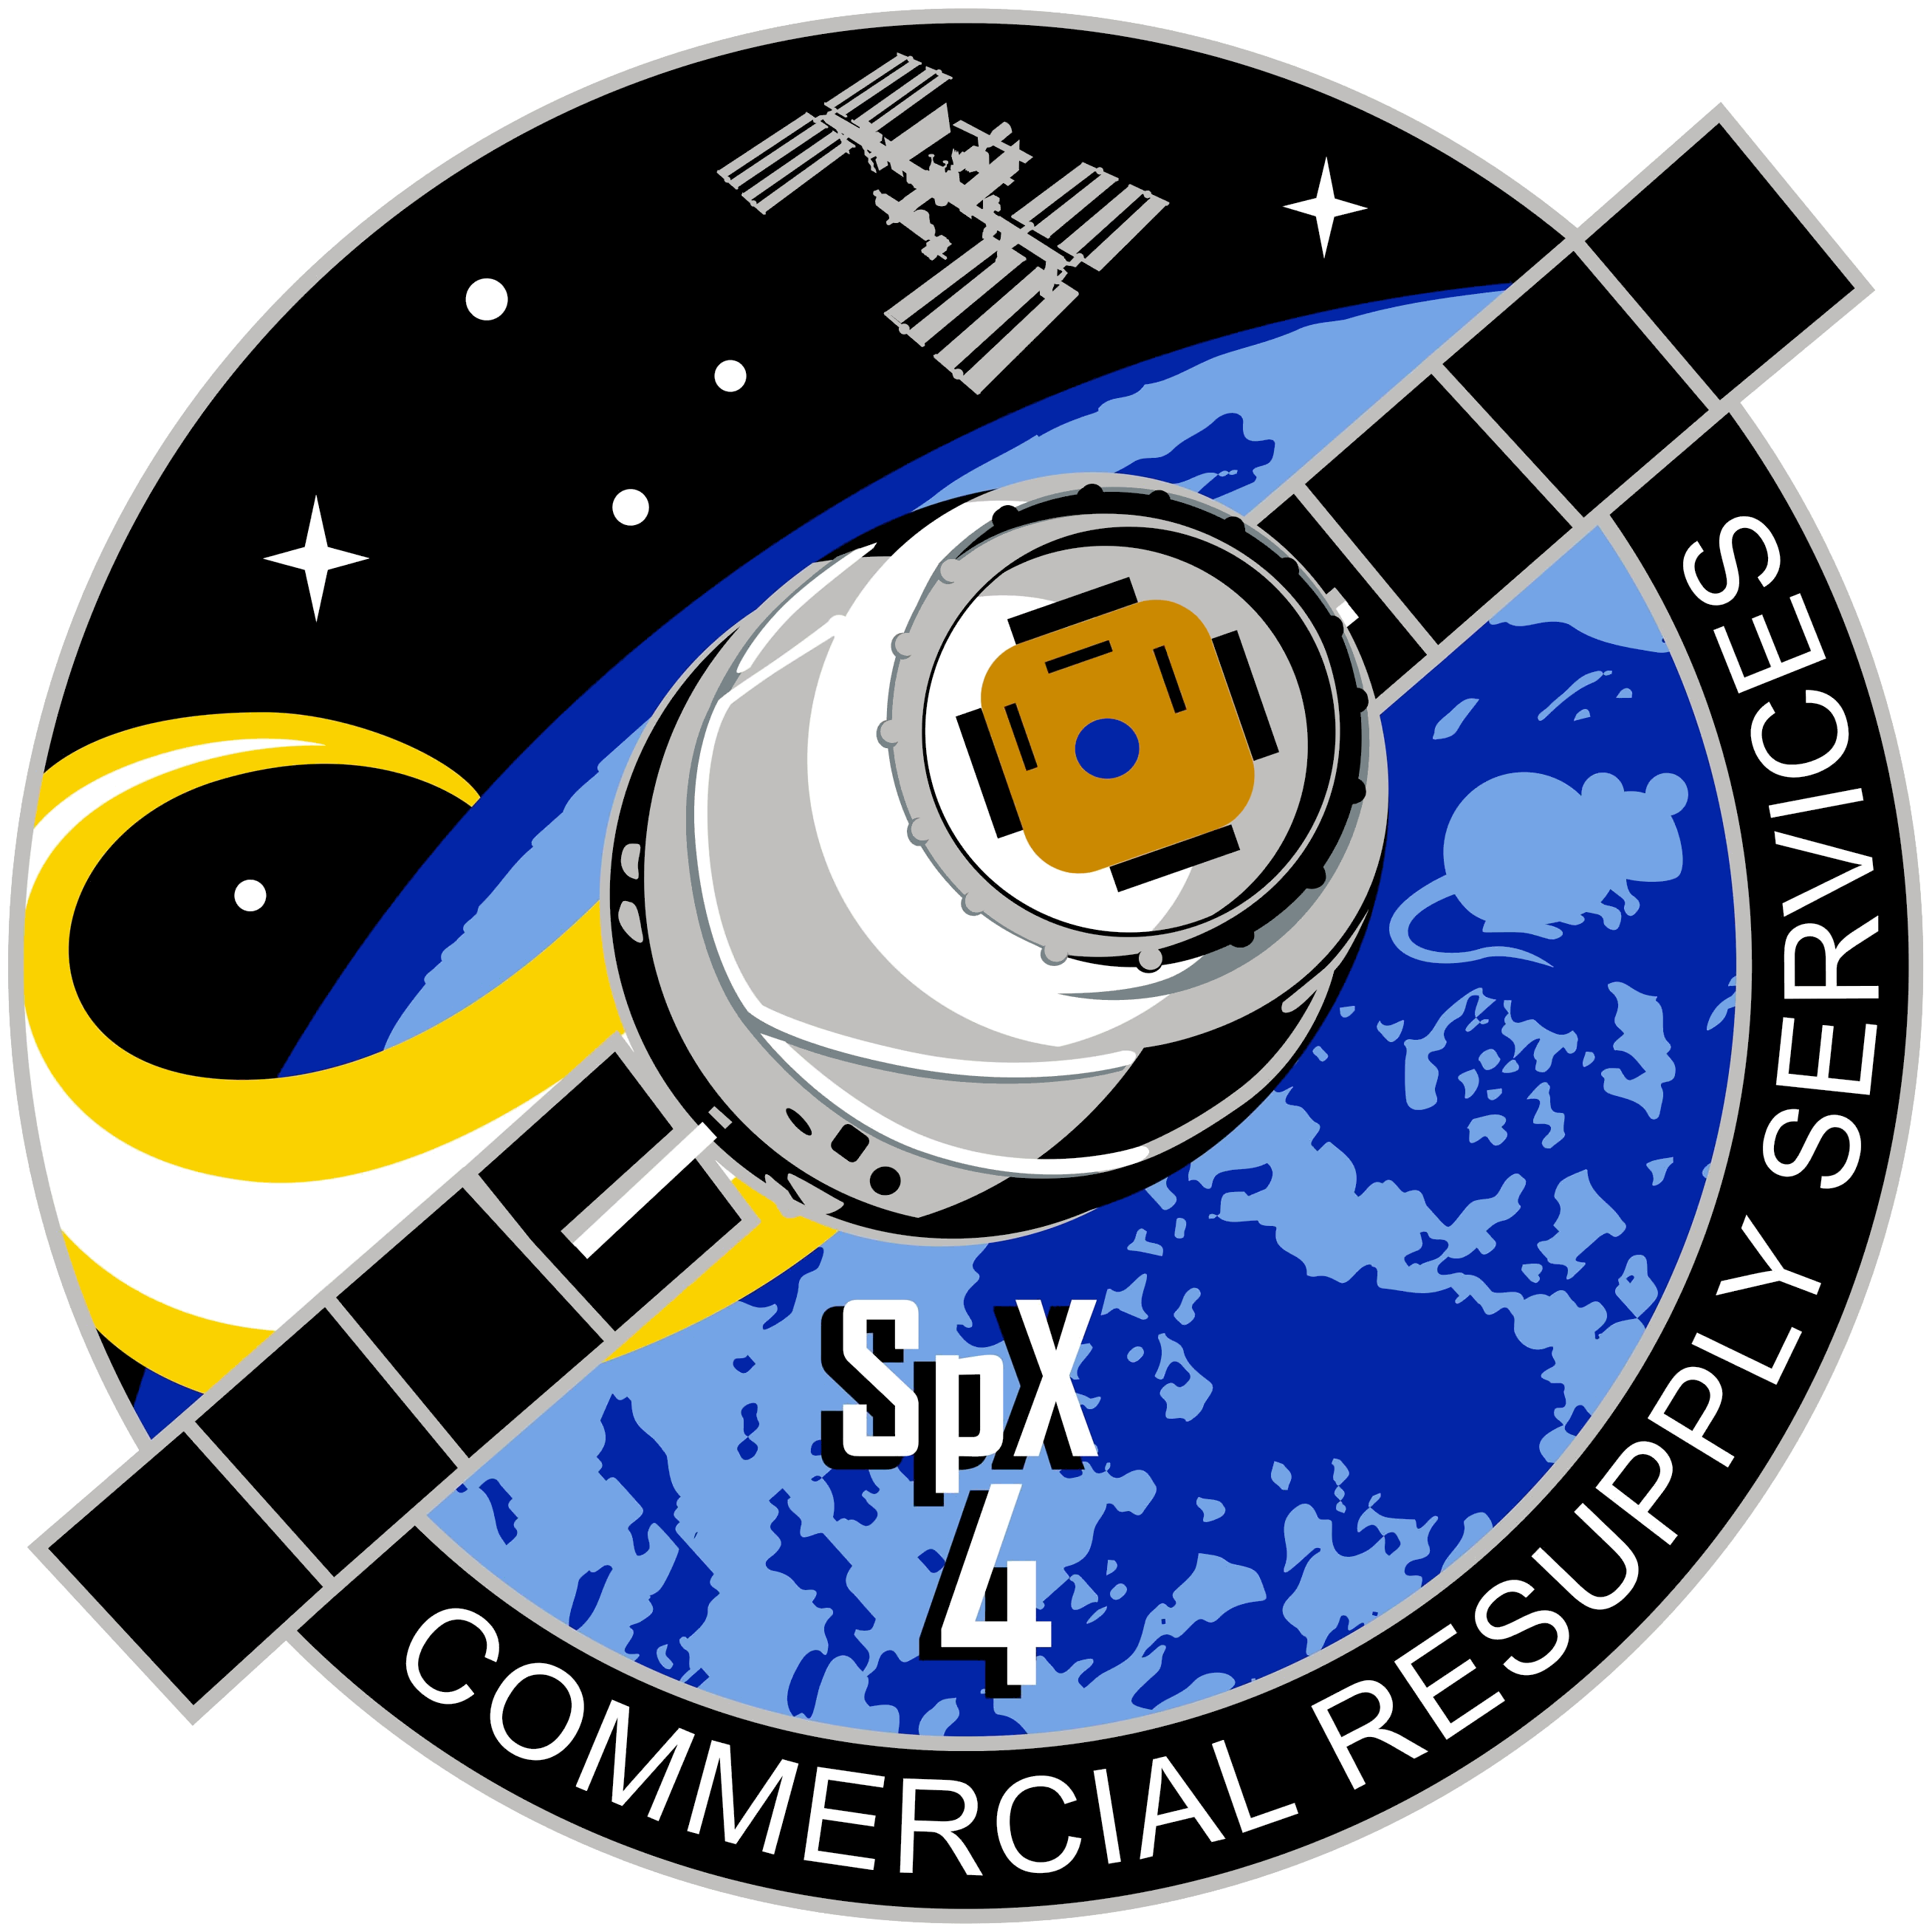 spacex crs 4 logo - photo #1